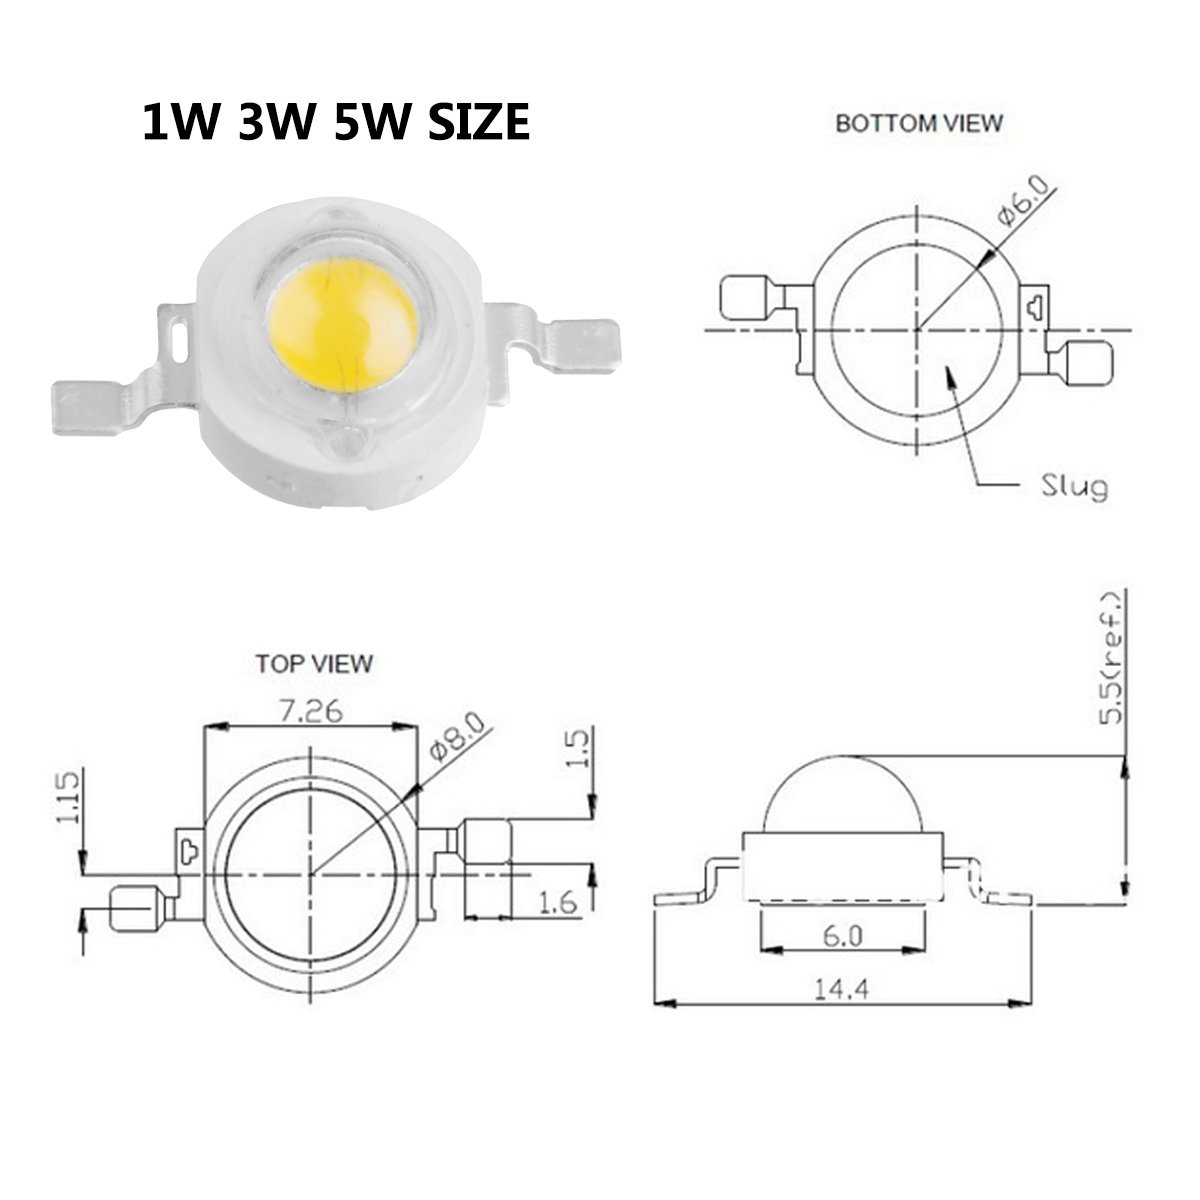 730nm // Input 1200mA // DC 1.8V-2.0V // 5 Watt SMD COB Emitter Diode Components 5 W Bead for DIY Growing Lamps Chanzon 5 pcs High Power Led Chip 5W Far Red Plant Grow Light